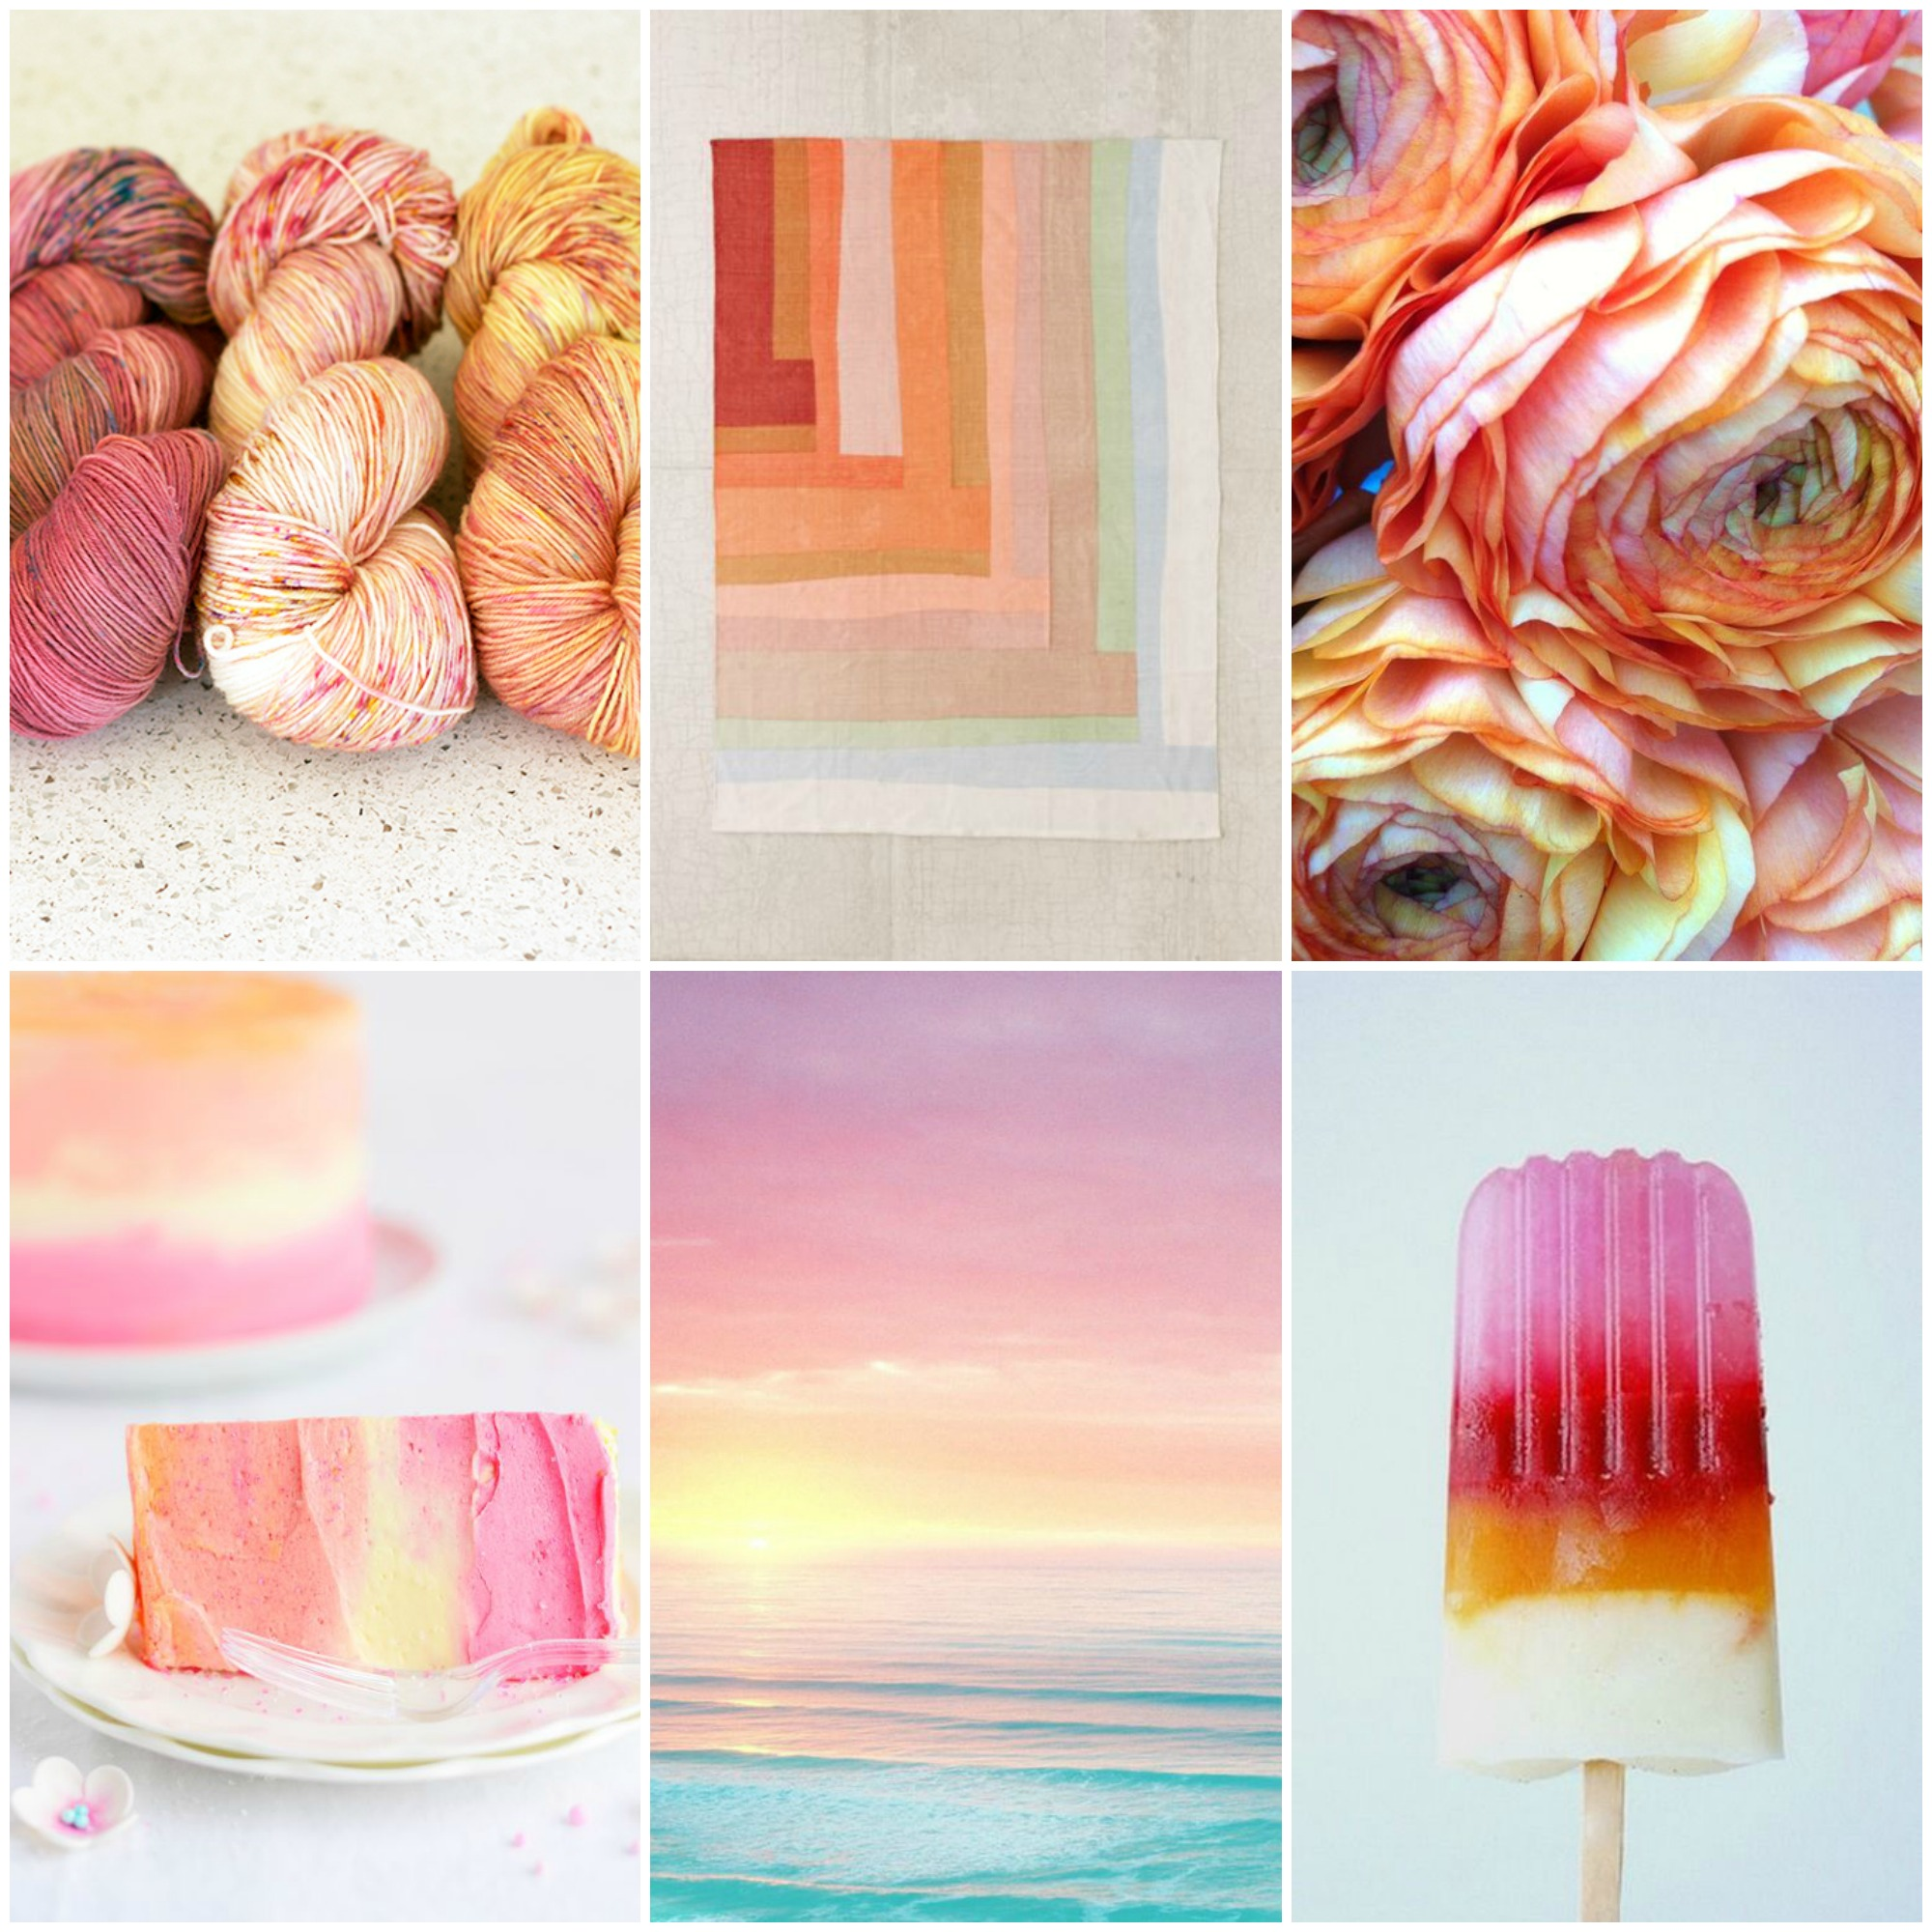 TFA PureWash Fingering in Paisley, Miso & Mimosa, patchwork rug , flowers , cake ,  sunset , popsicle ,